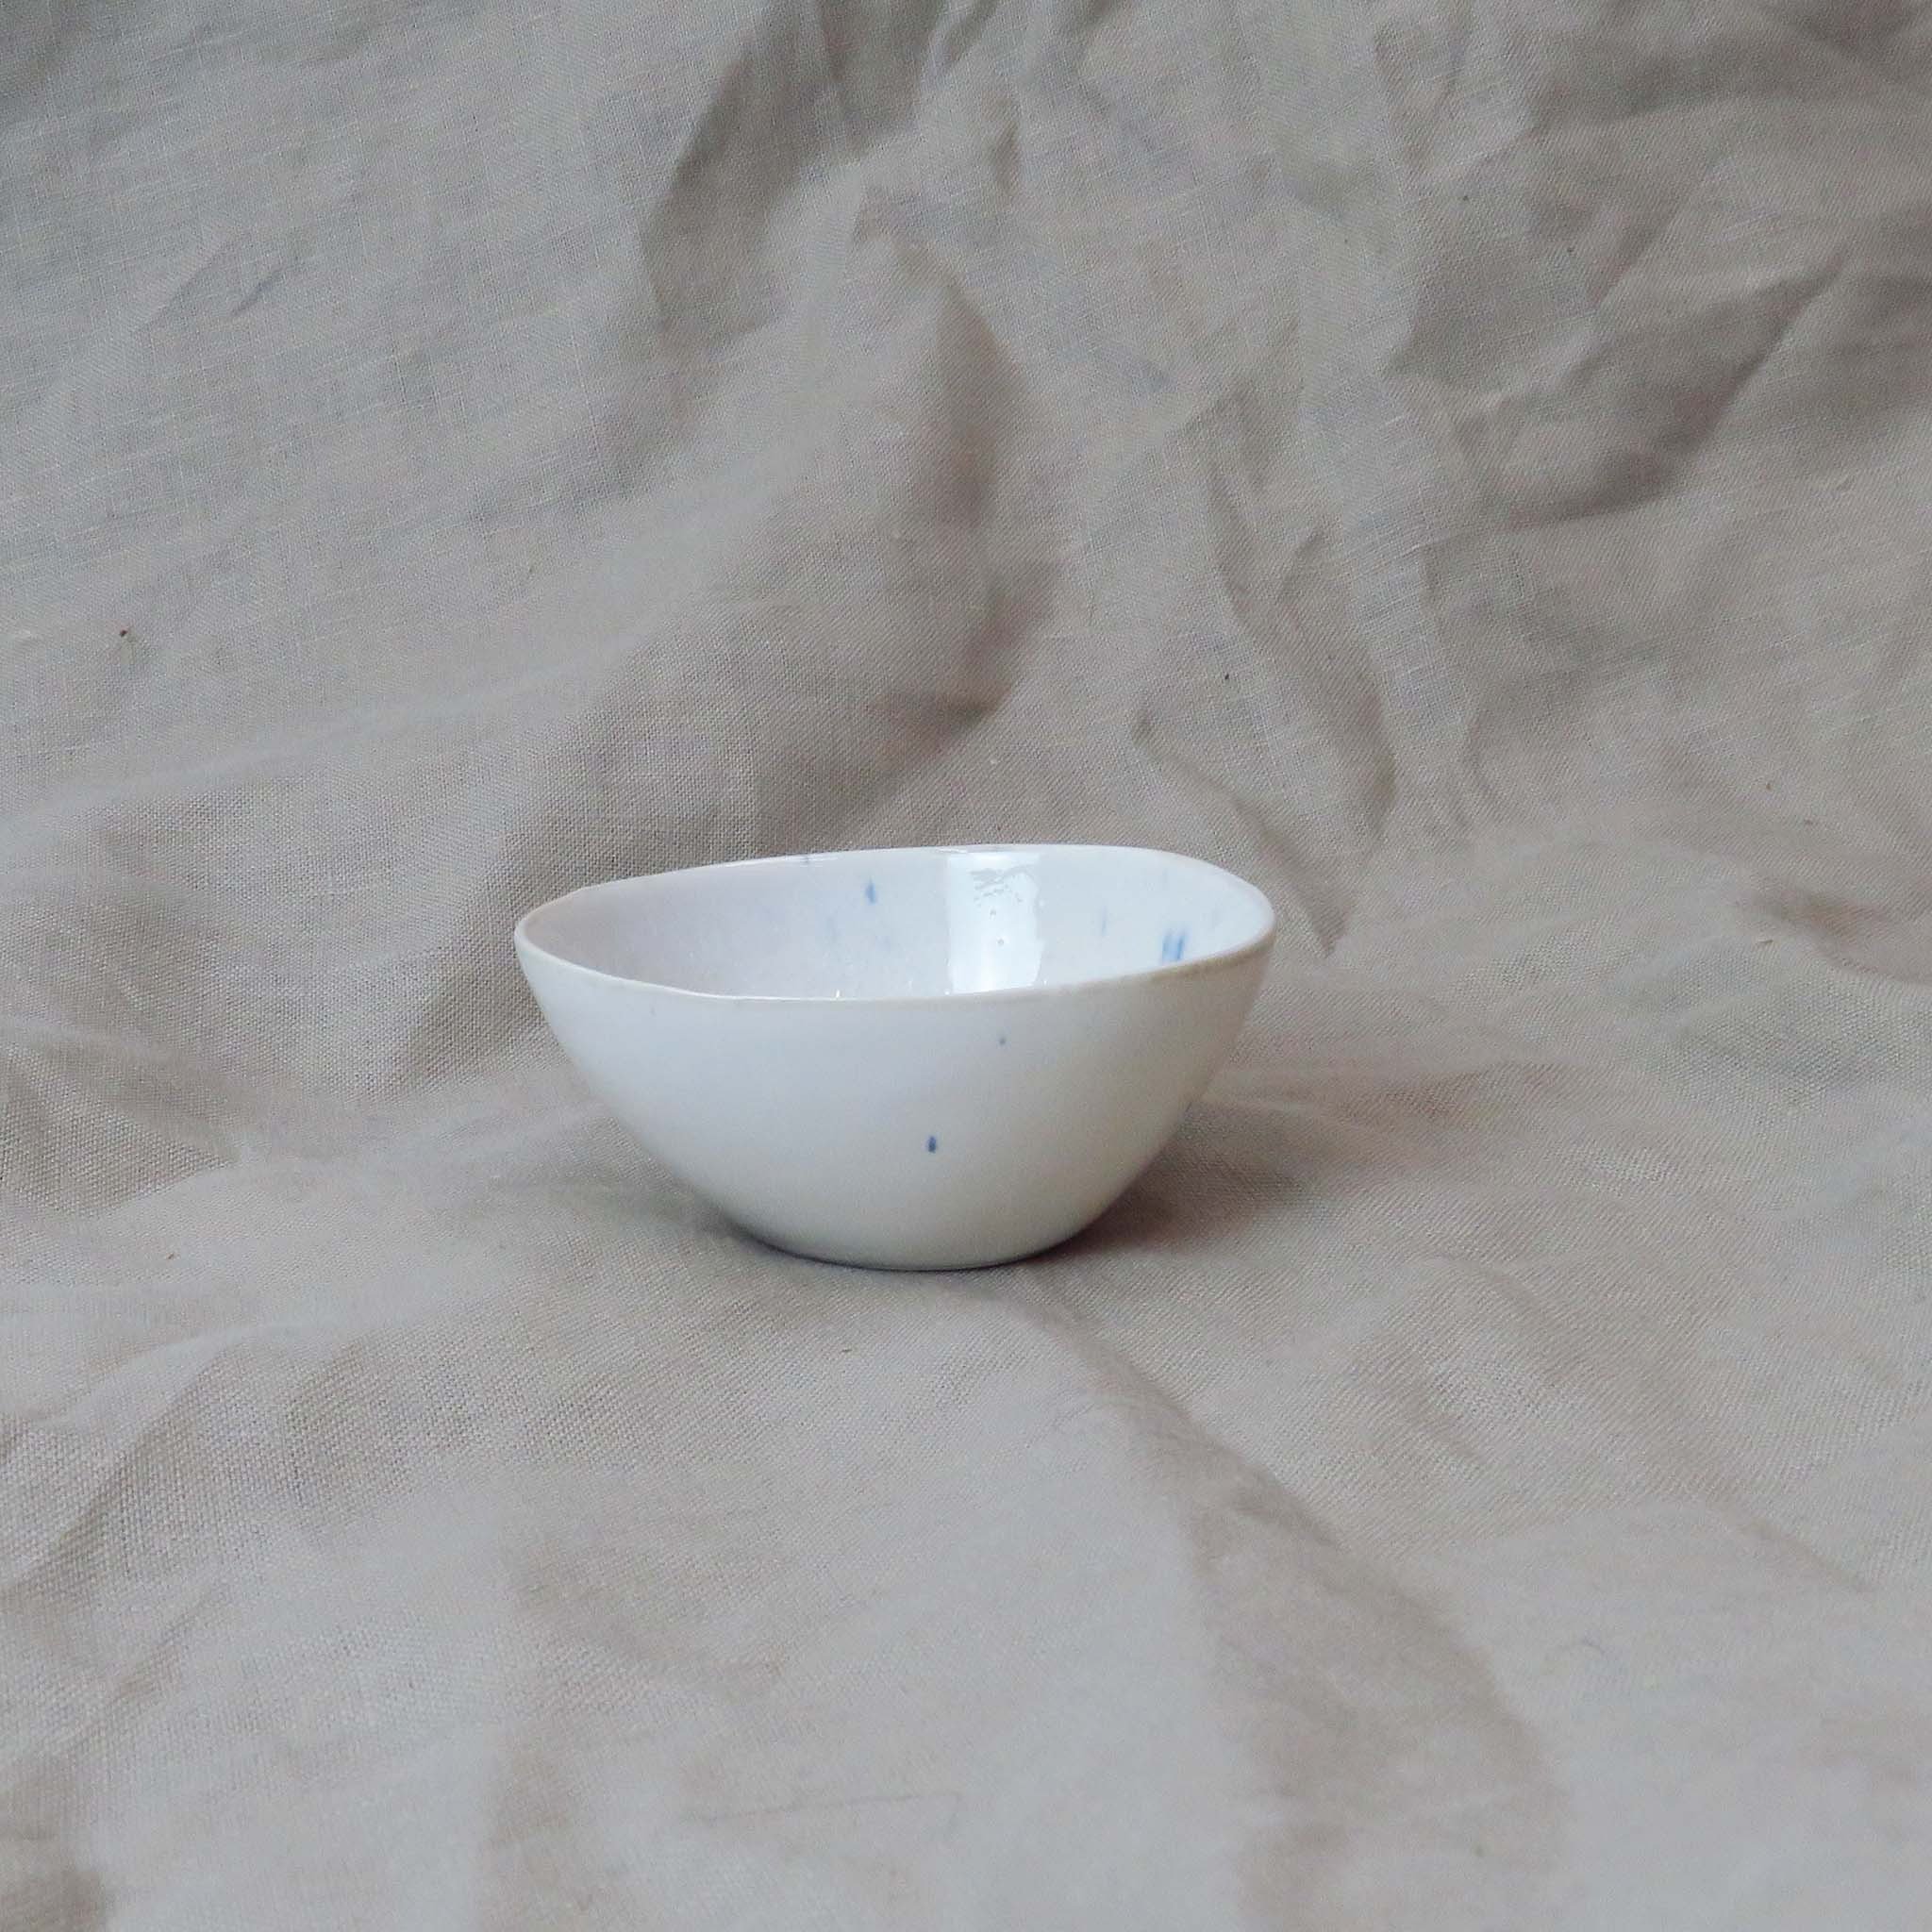 Creative Co-Op Small Ceramic Bowl Side View